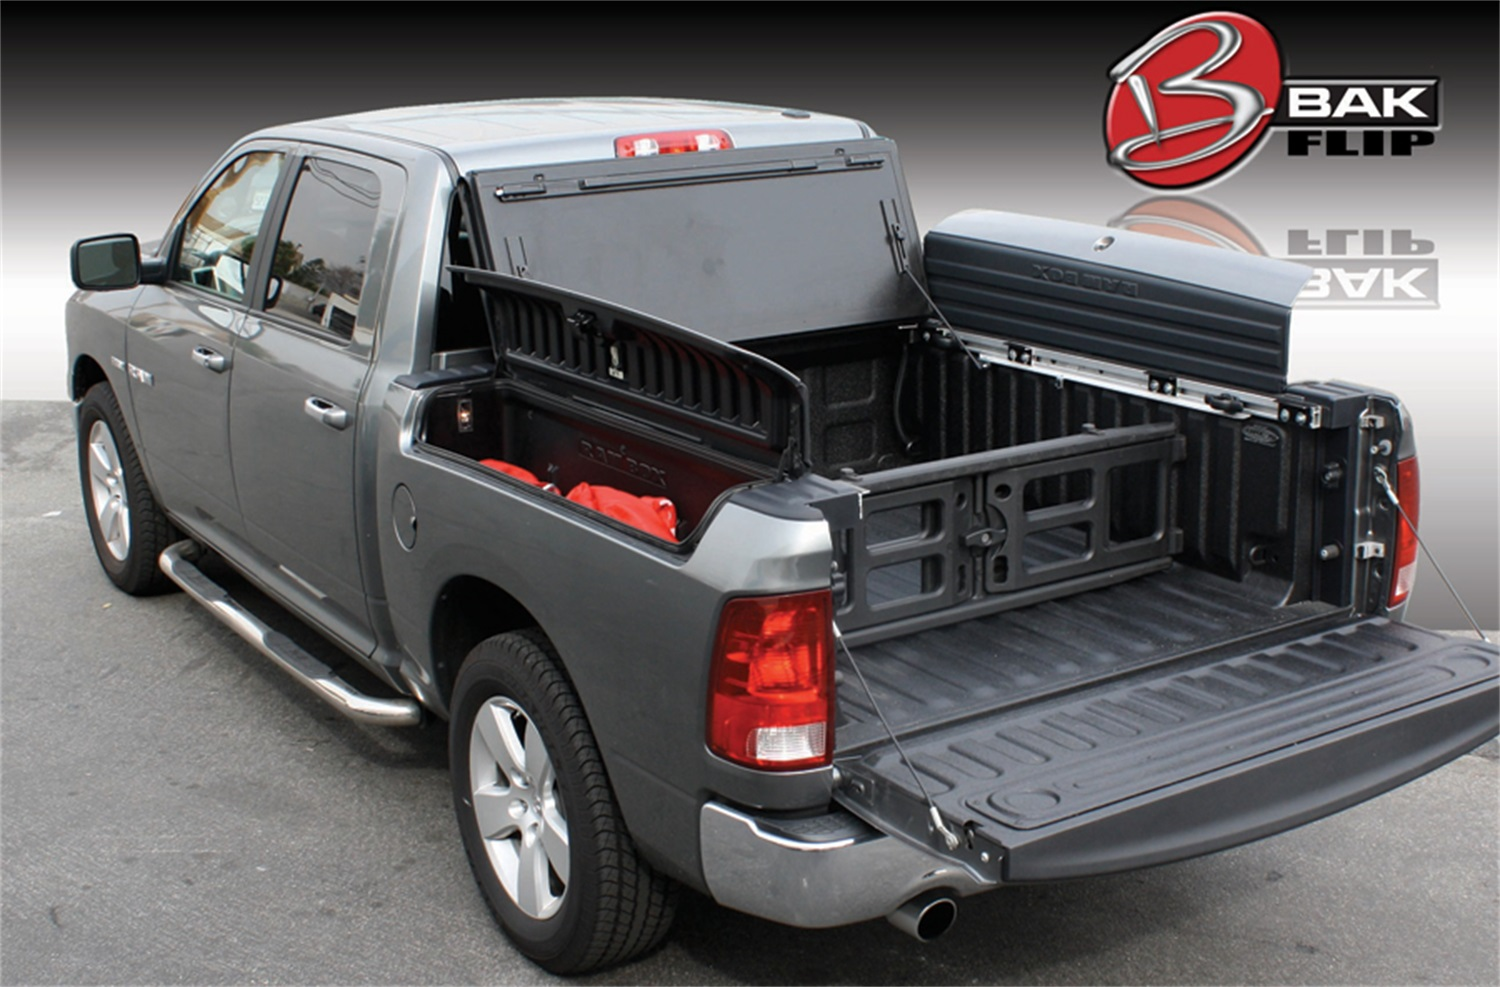 Bak Bakflip Vp Tonneau Cover For 09 16 Dodge Ram 1500 5 7